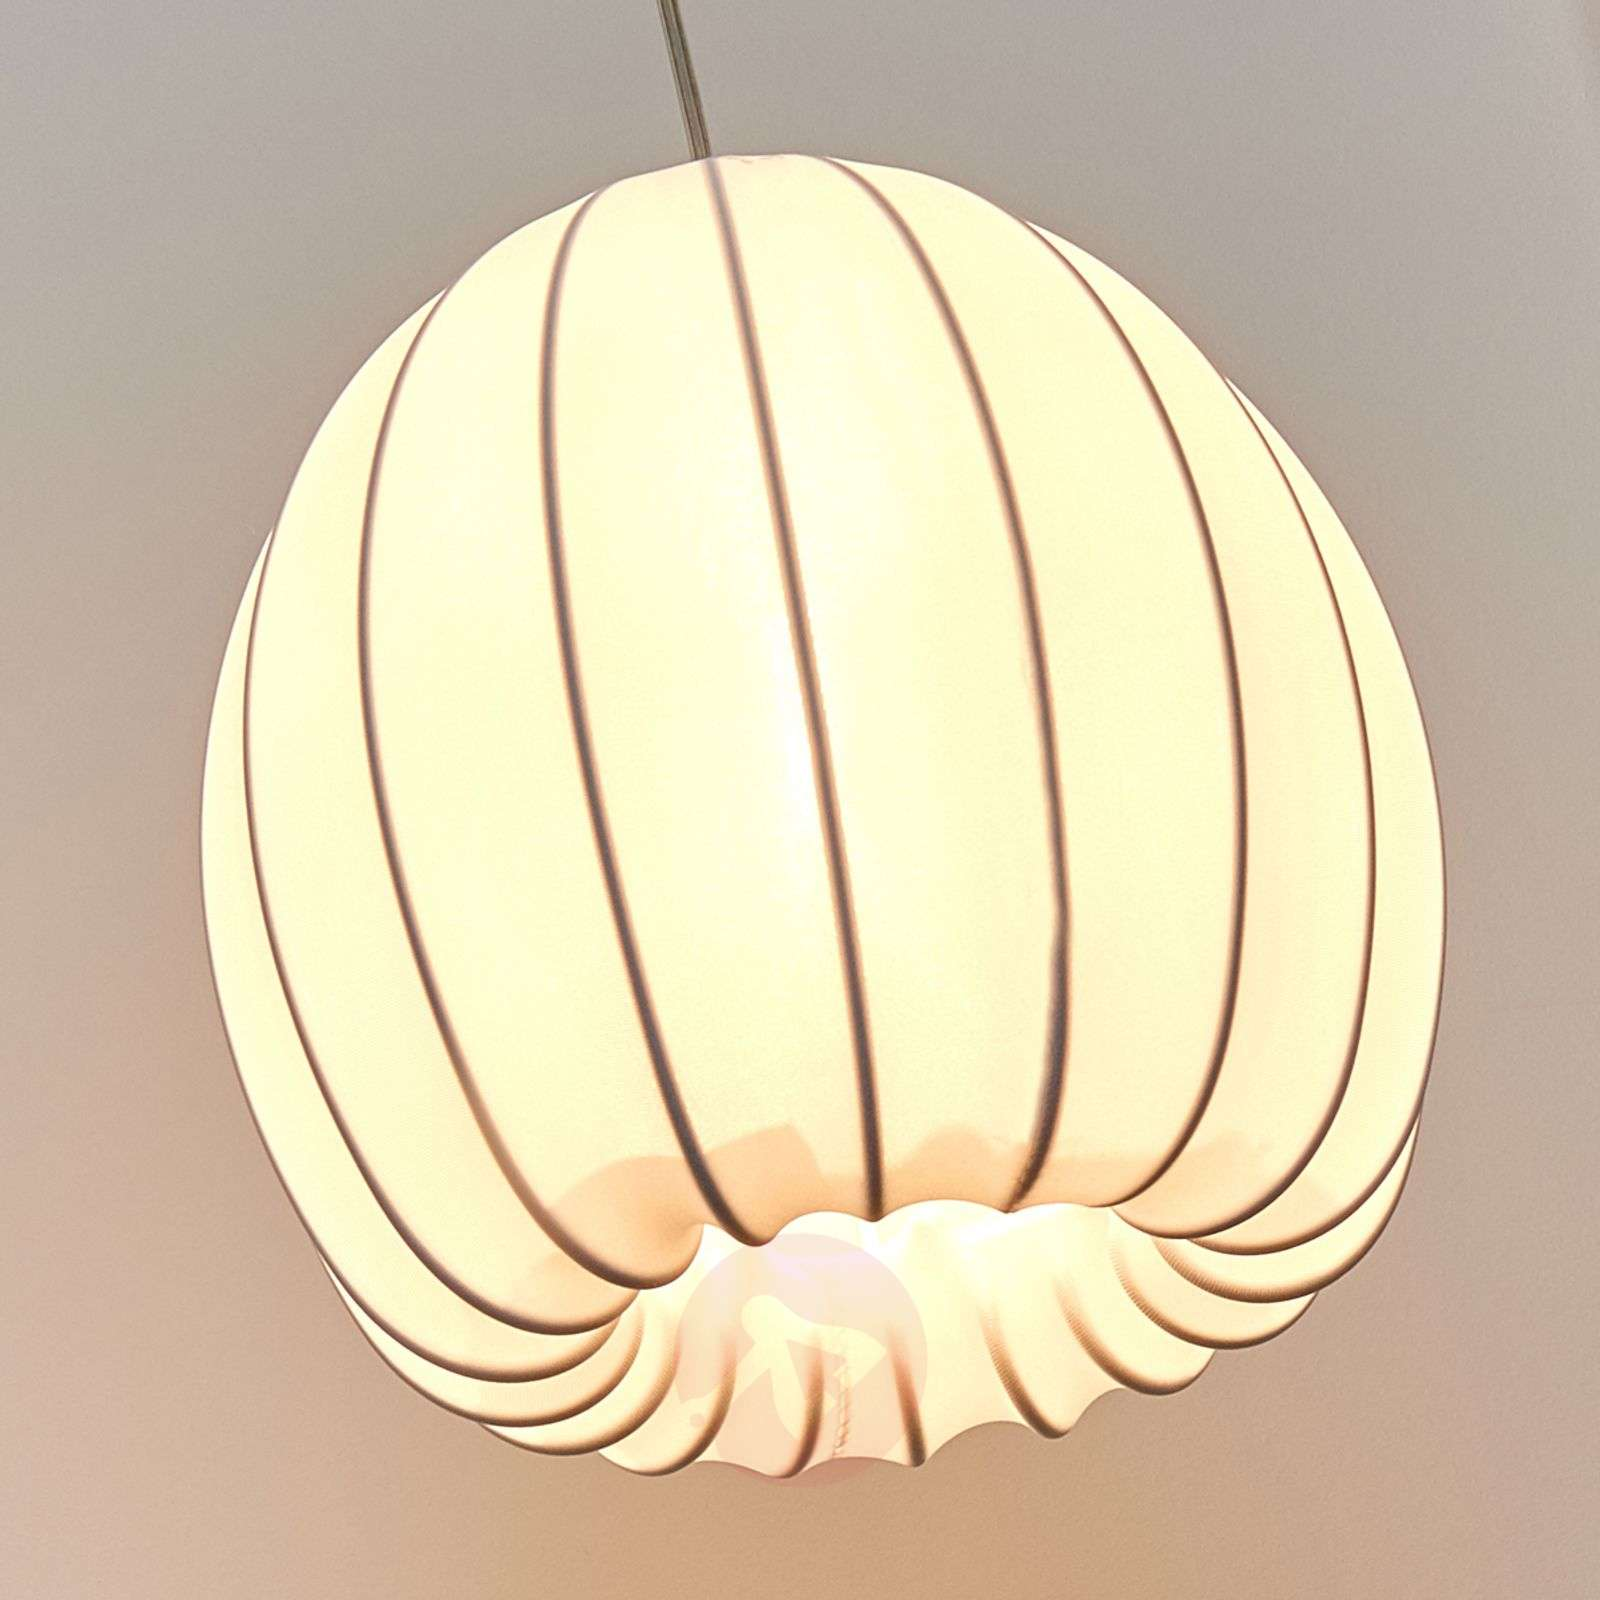 c354a66fcd5 Axolight Muse hanging light in white, 25 cm-1088051-01 ...